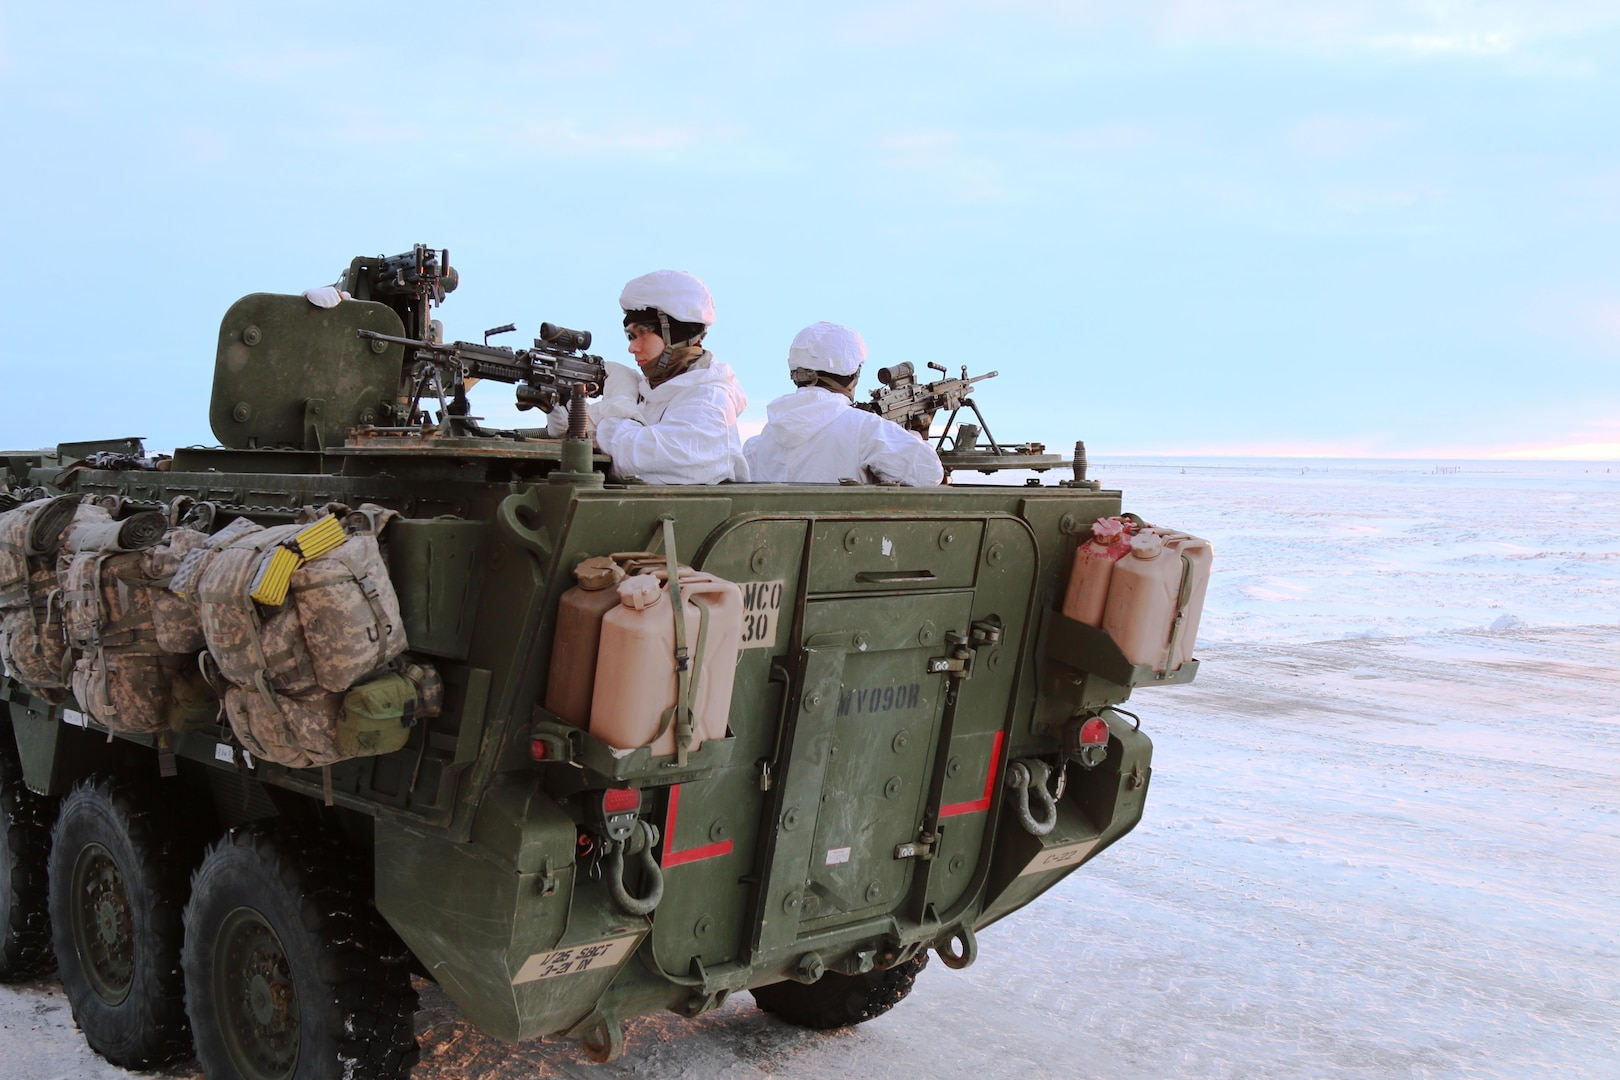 U.S. Army Alaska Soldiers from Bravo Company, 3-21 Infantry Regiment, 1st Stryker Brigade scanning the Arctic tundra outside Deadhorse, Alaska, during Operation Arctic Pegasus, Nov. 4, 2015. Arctic Pegasus is U.S. Army Alaska's annual joint exercise designed to test rapid-deployment and readiness in the Arctic. The exercise marks the first time Strykers have deployed above the Arctic Circle. 1st Stryker Brigade Combat Team is the Army's northernmost unit and has the unique capability to deploy and operate in extreme cold regions. (Photo by Capt. Richard Packer, U.S. Army Alaska Public Affairs)